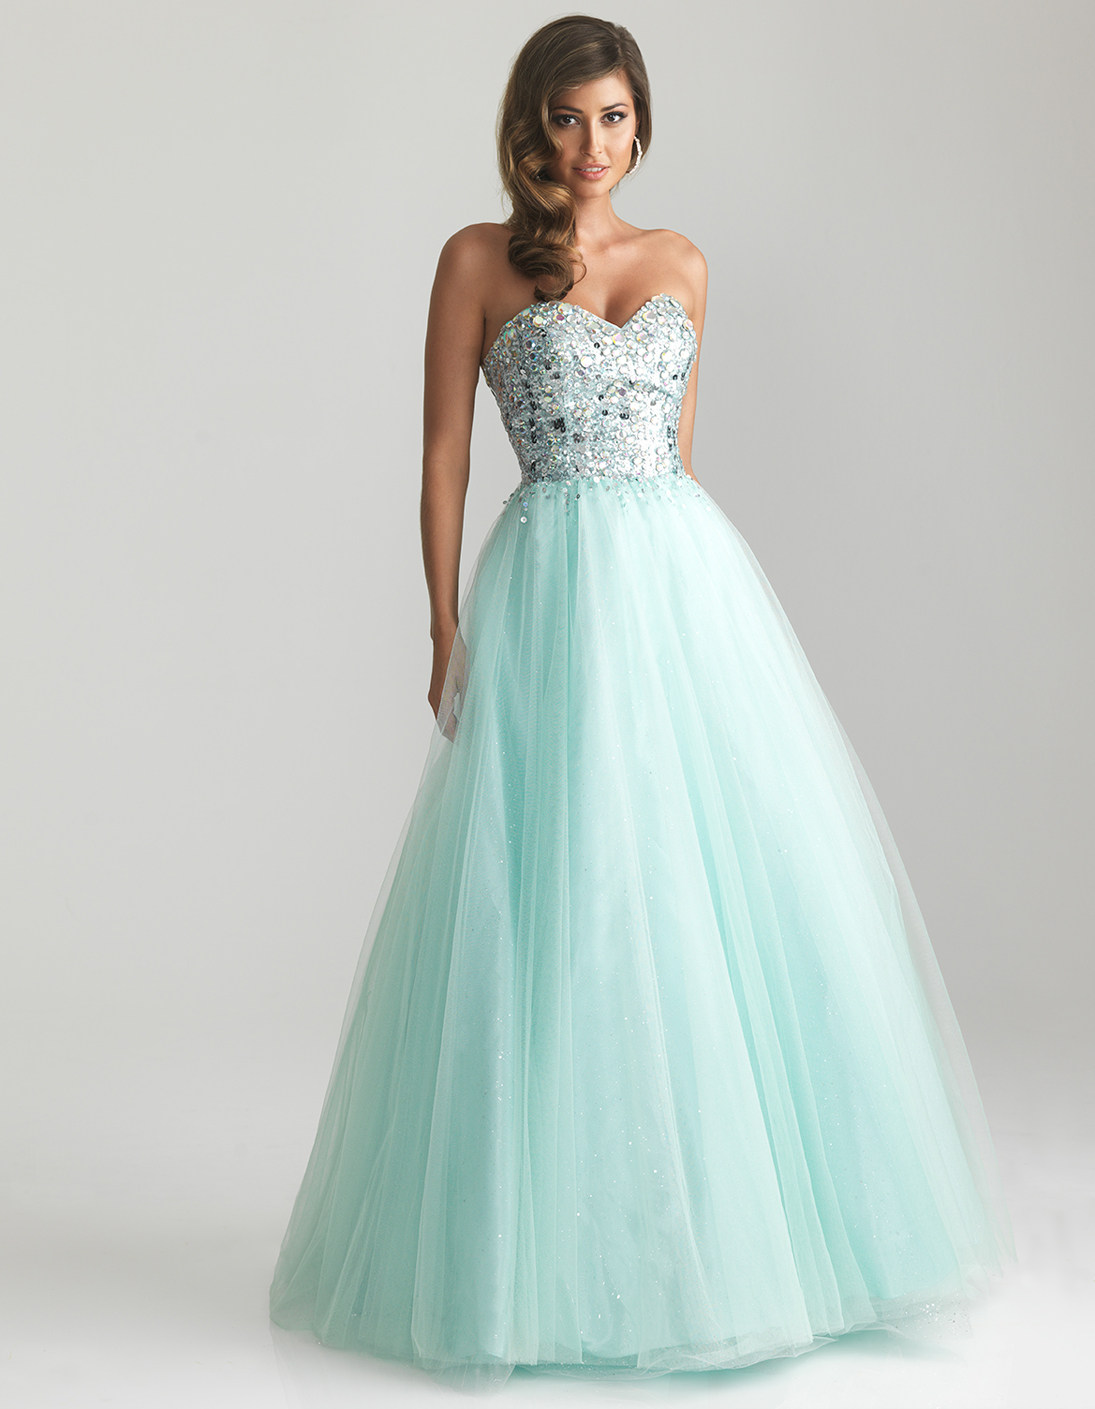 Unique And Beautiful Prom Dresses 116